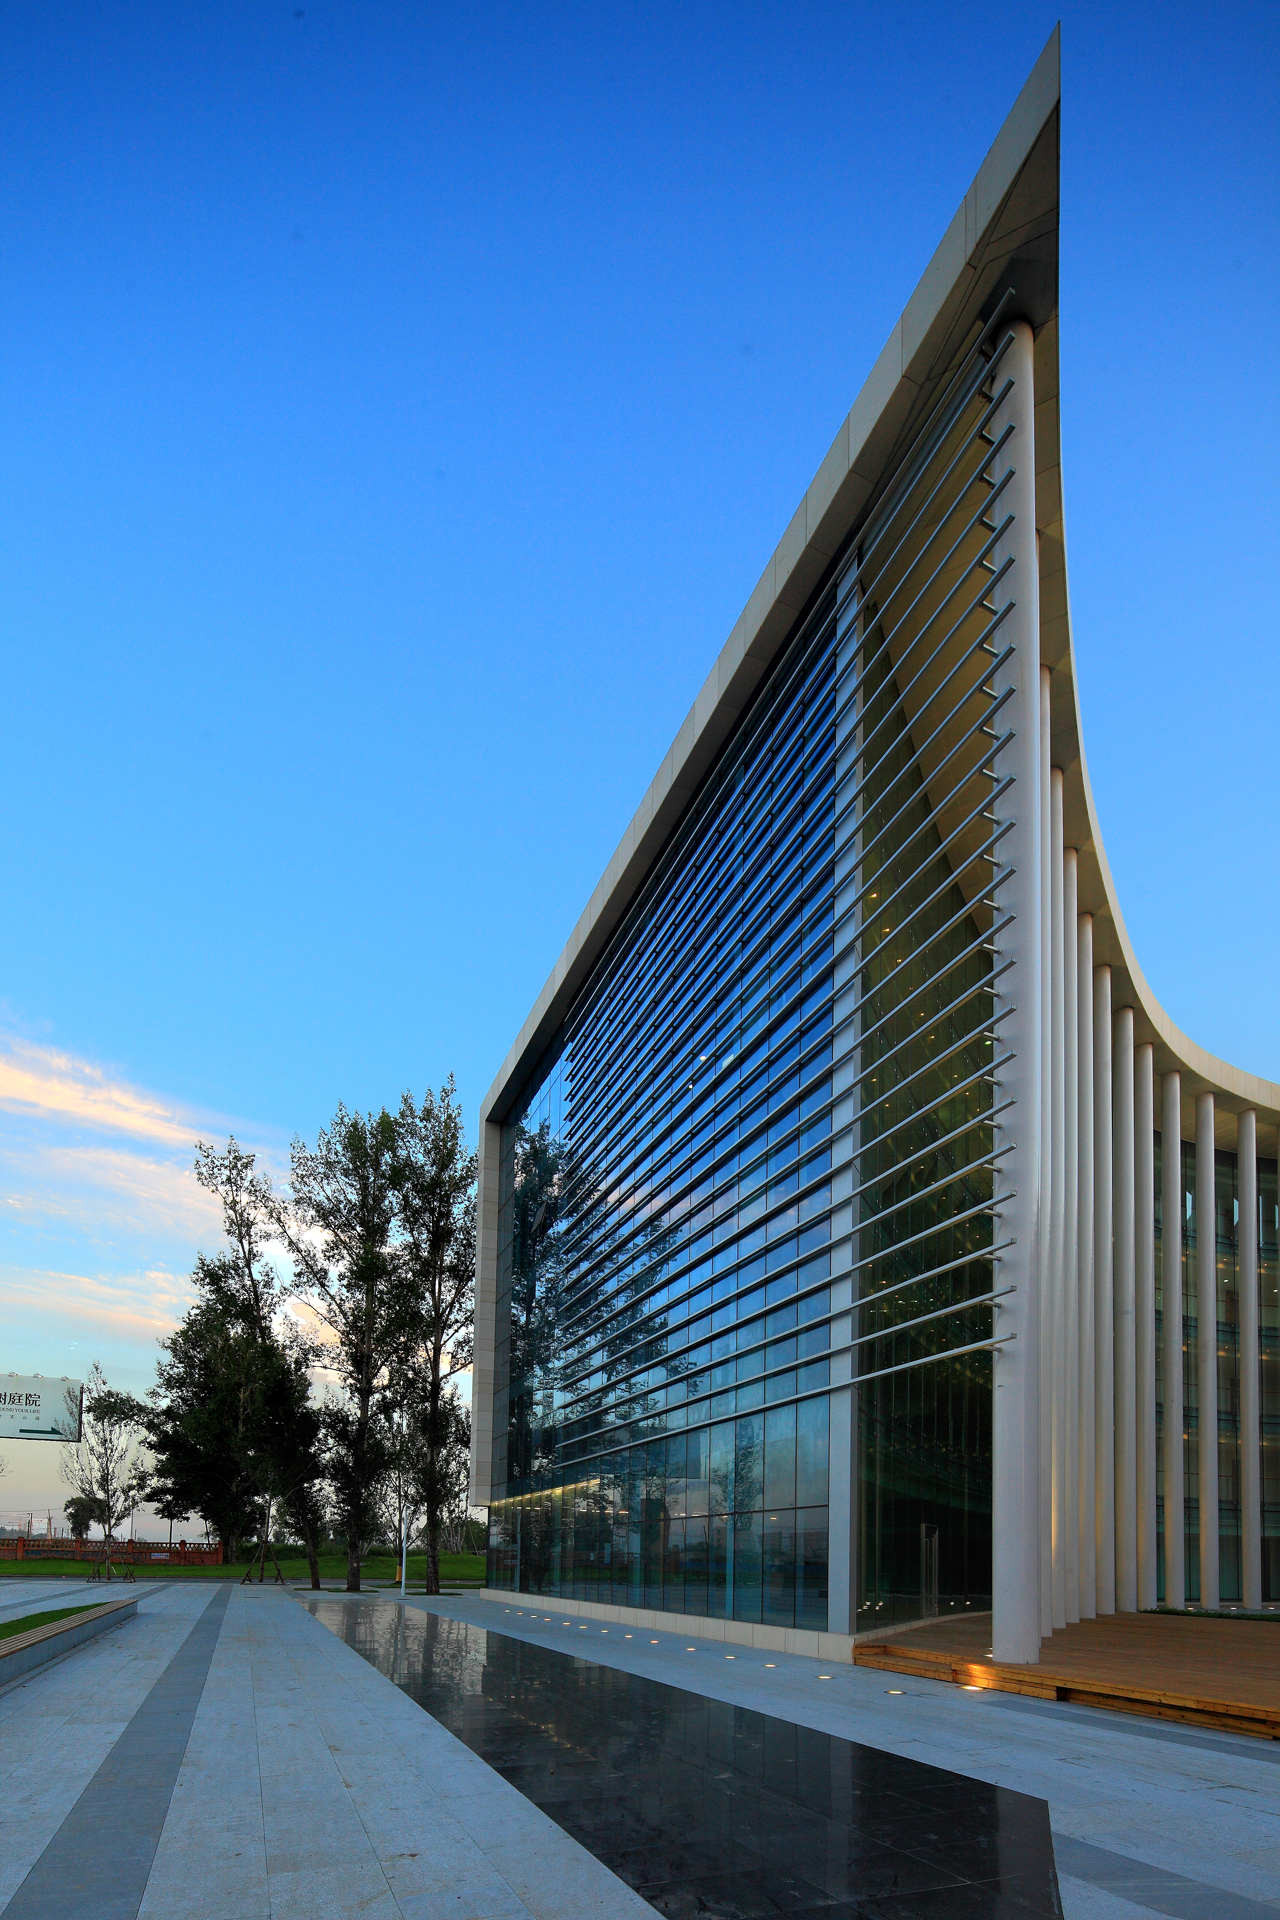 Gallery of Haxi New District Office Building / ZNA - 3 - photo#27